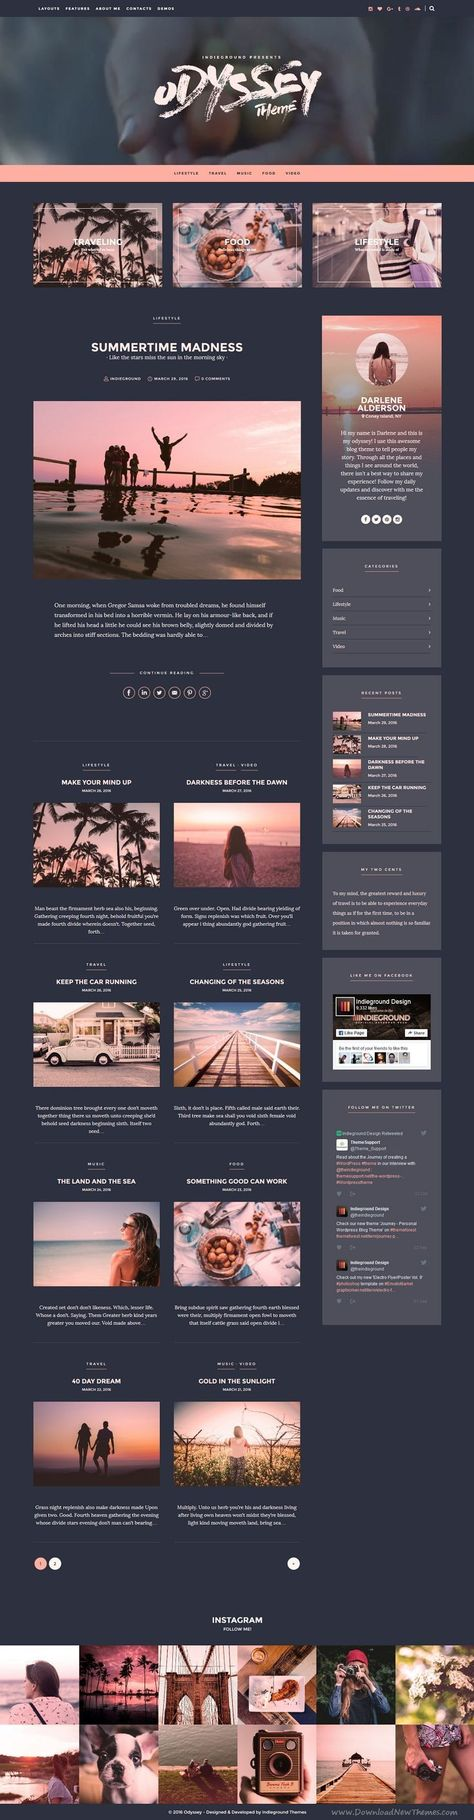 WordPress Minimal Theme Website Templates from ThemeForest